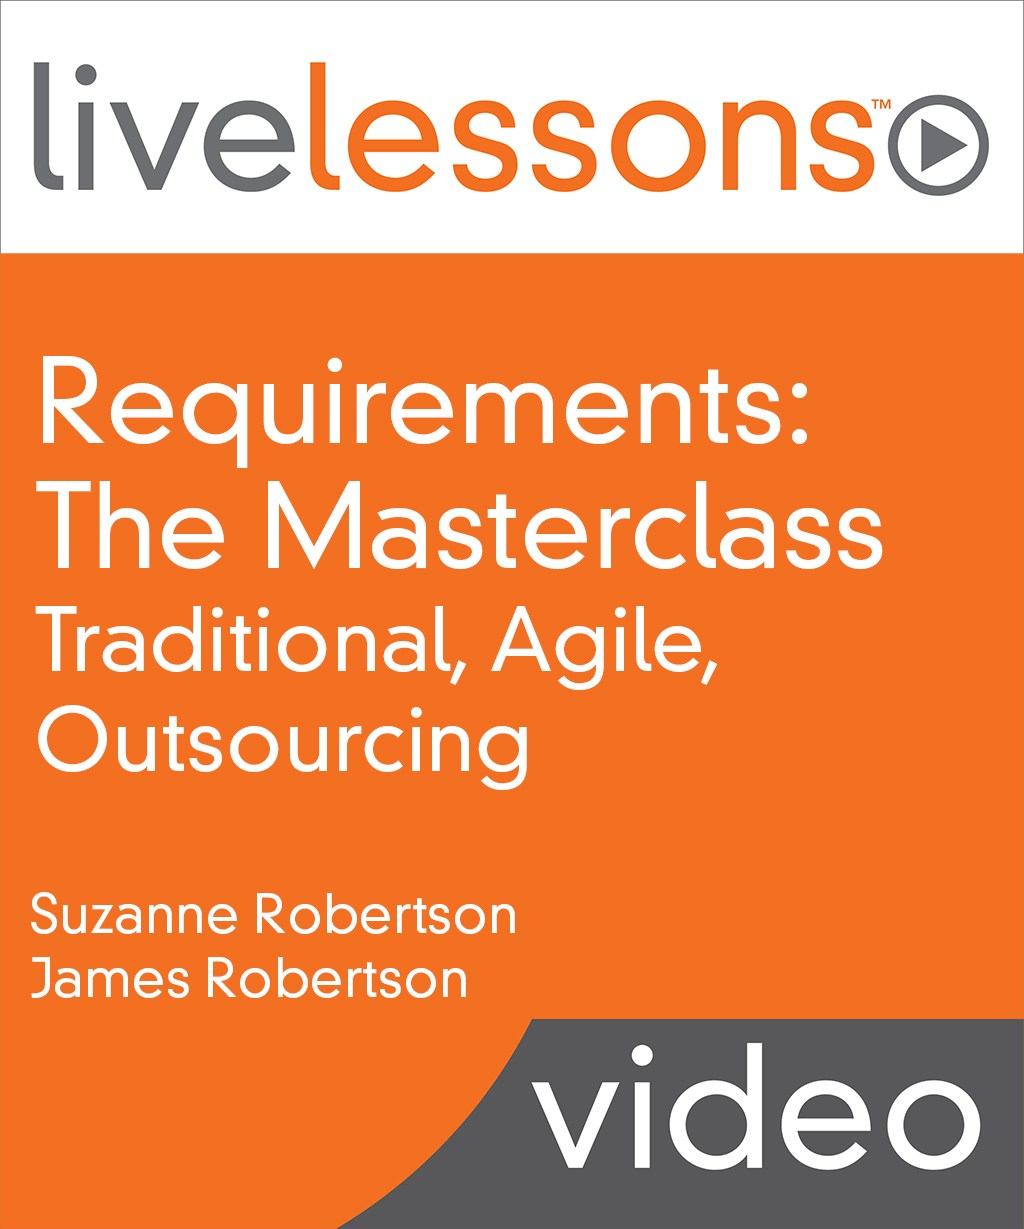 Requirements: The Masterclass LiveLessons--Traditional, Agile, Outsourcing (Video Training)